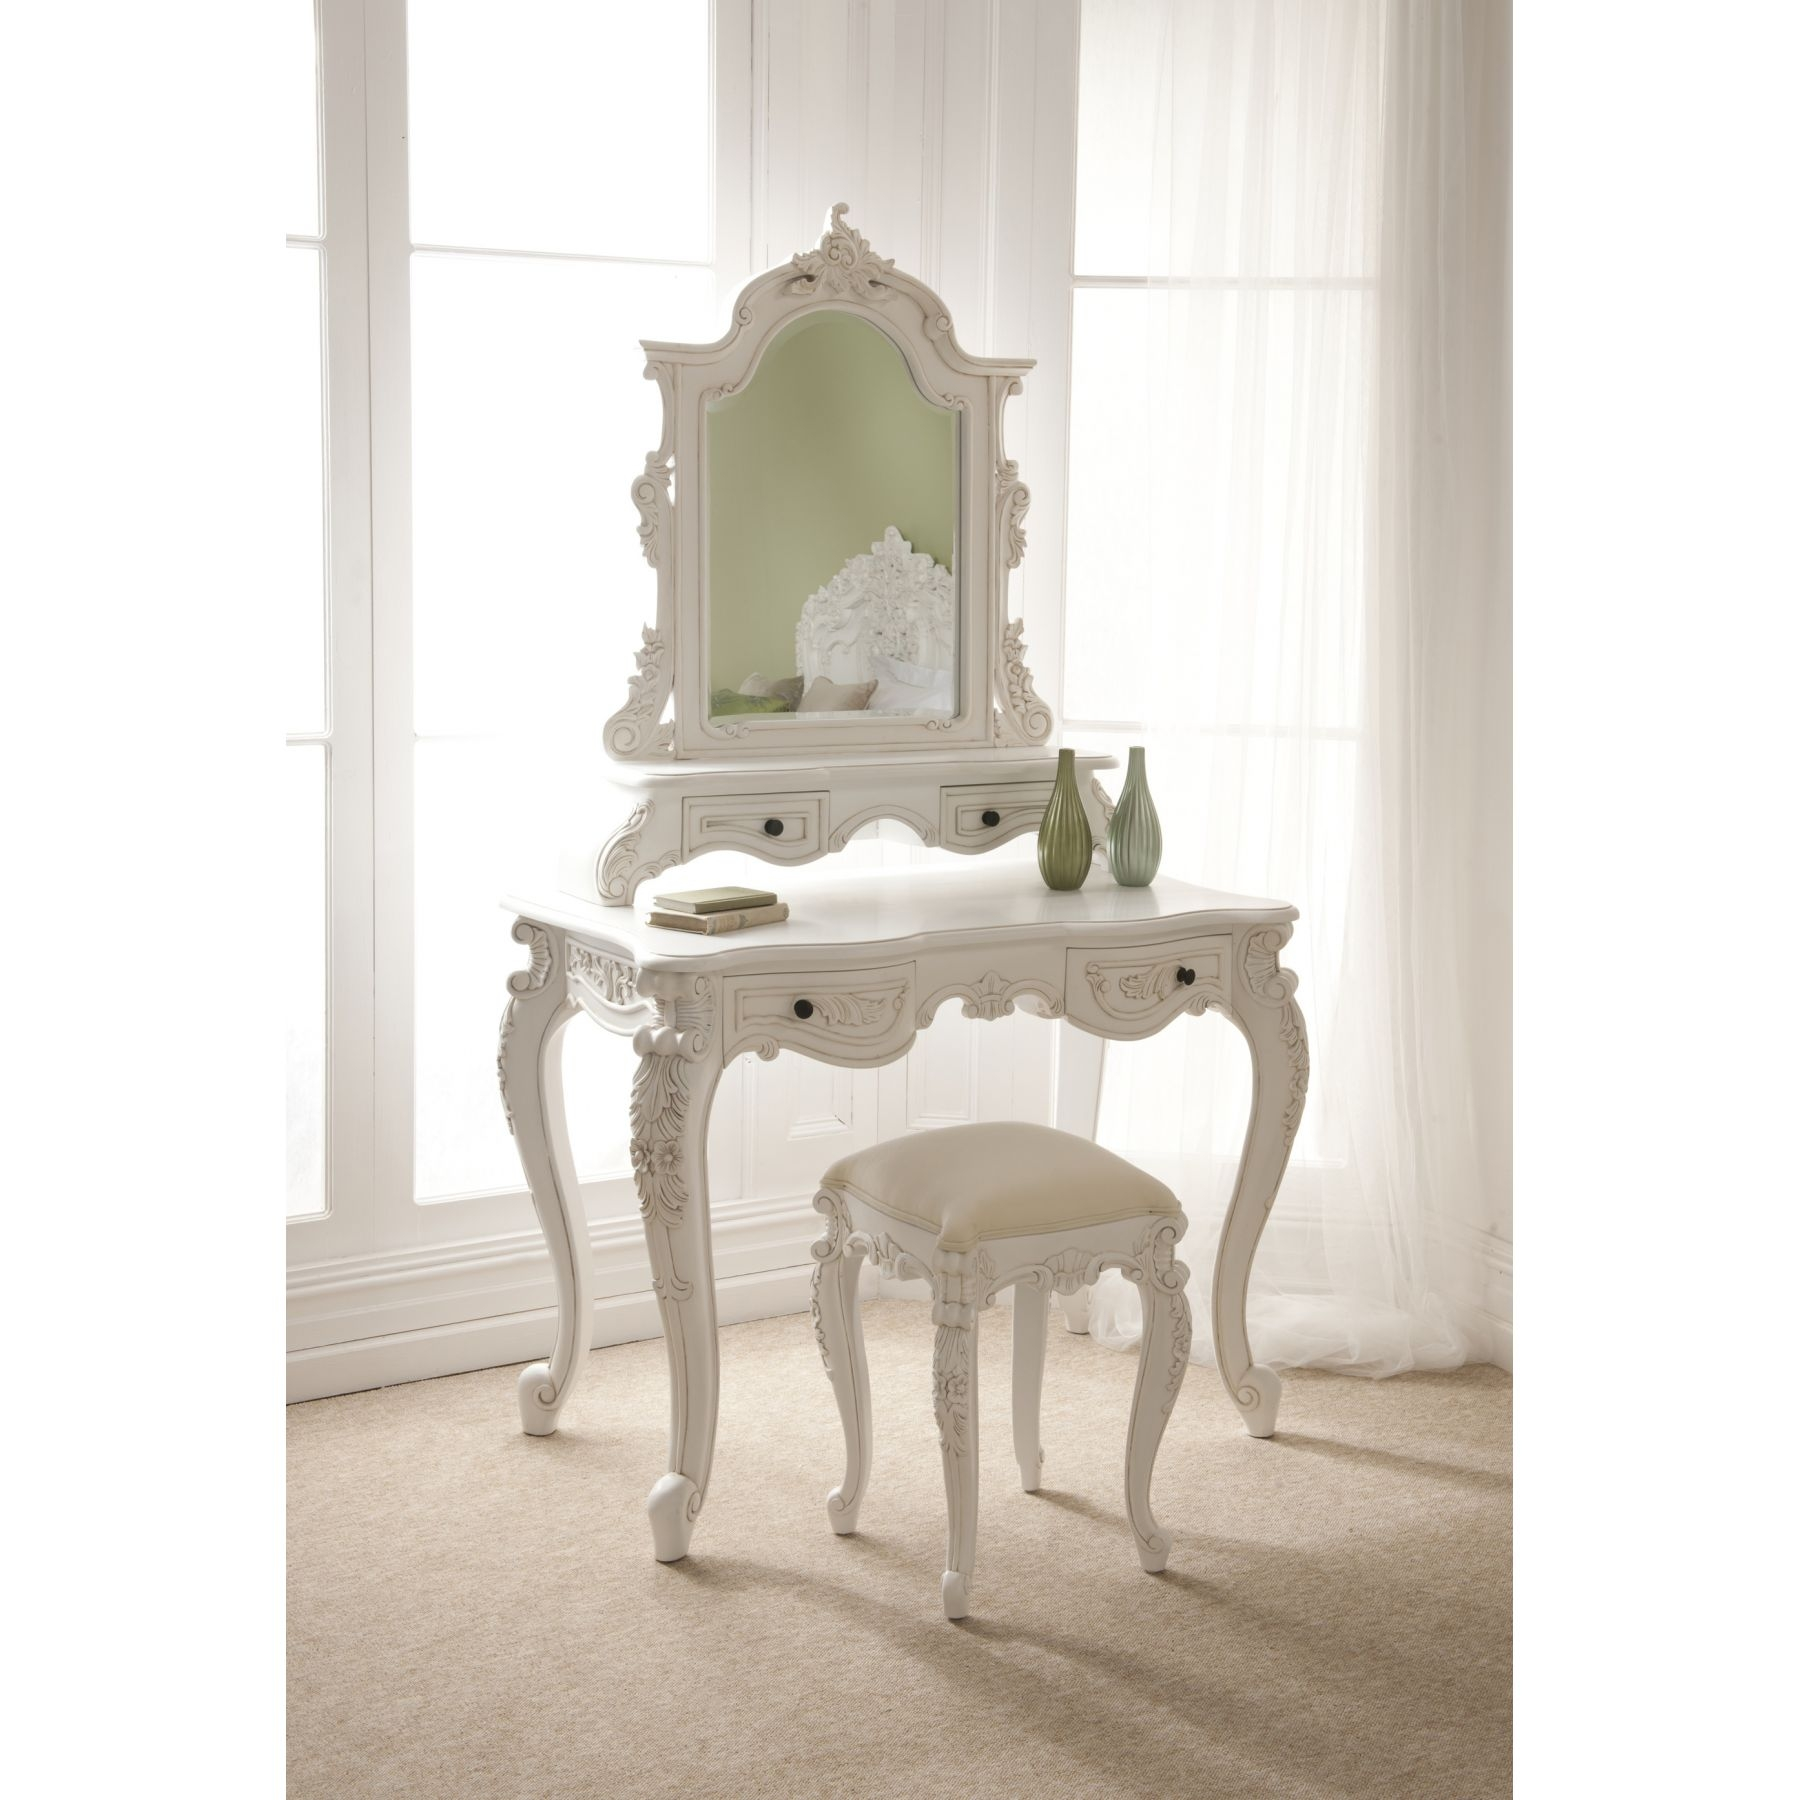 Bedroom Uncategorized French Style Dressing Table Mirror With 4 Inside French Style Dressing Table Mirror (Image 5 of 15)